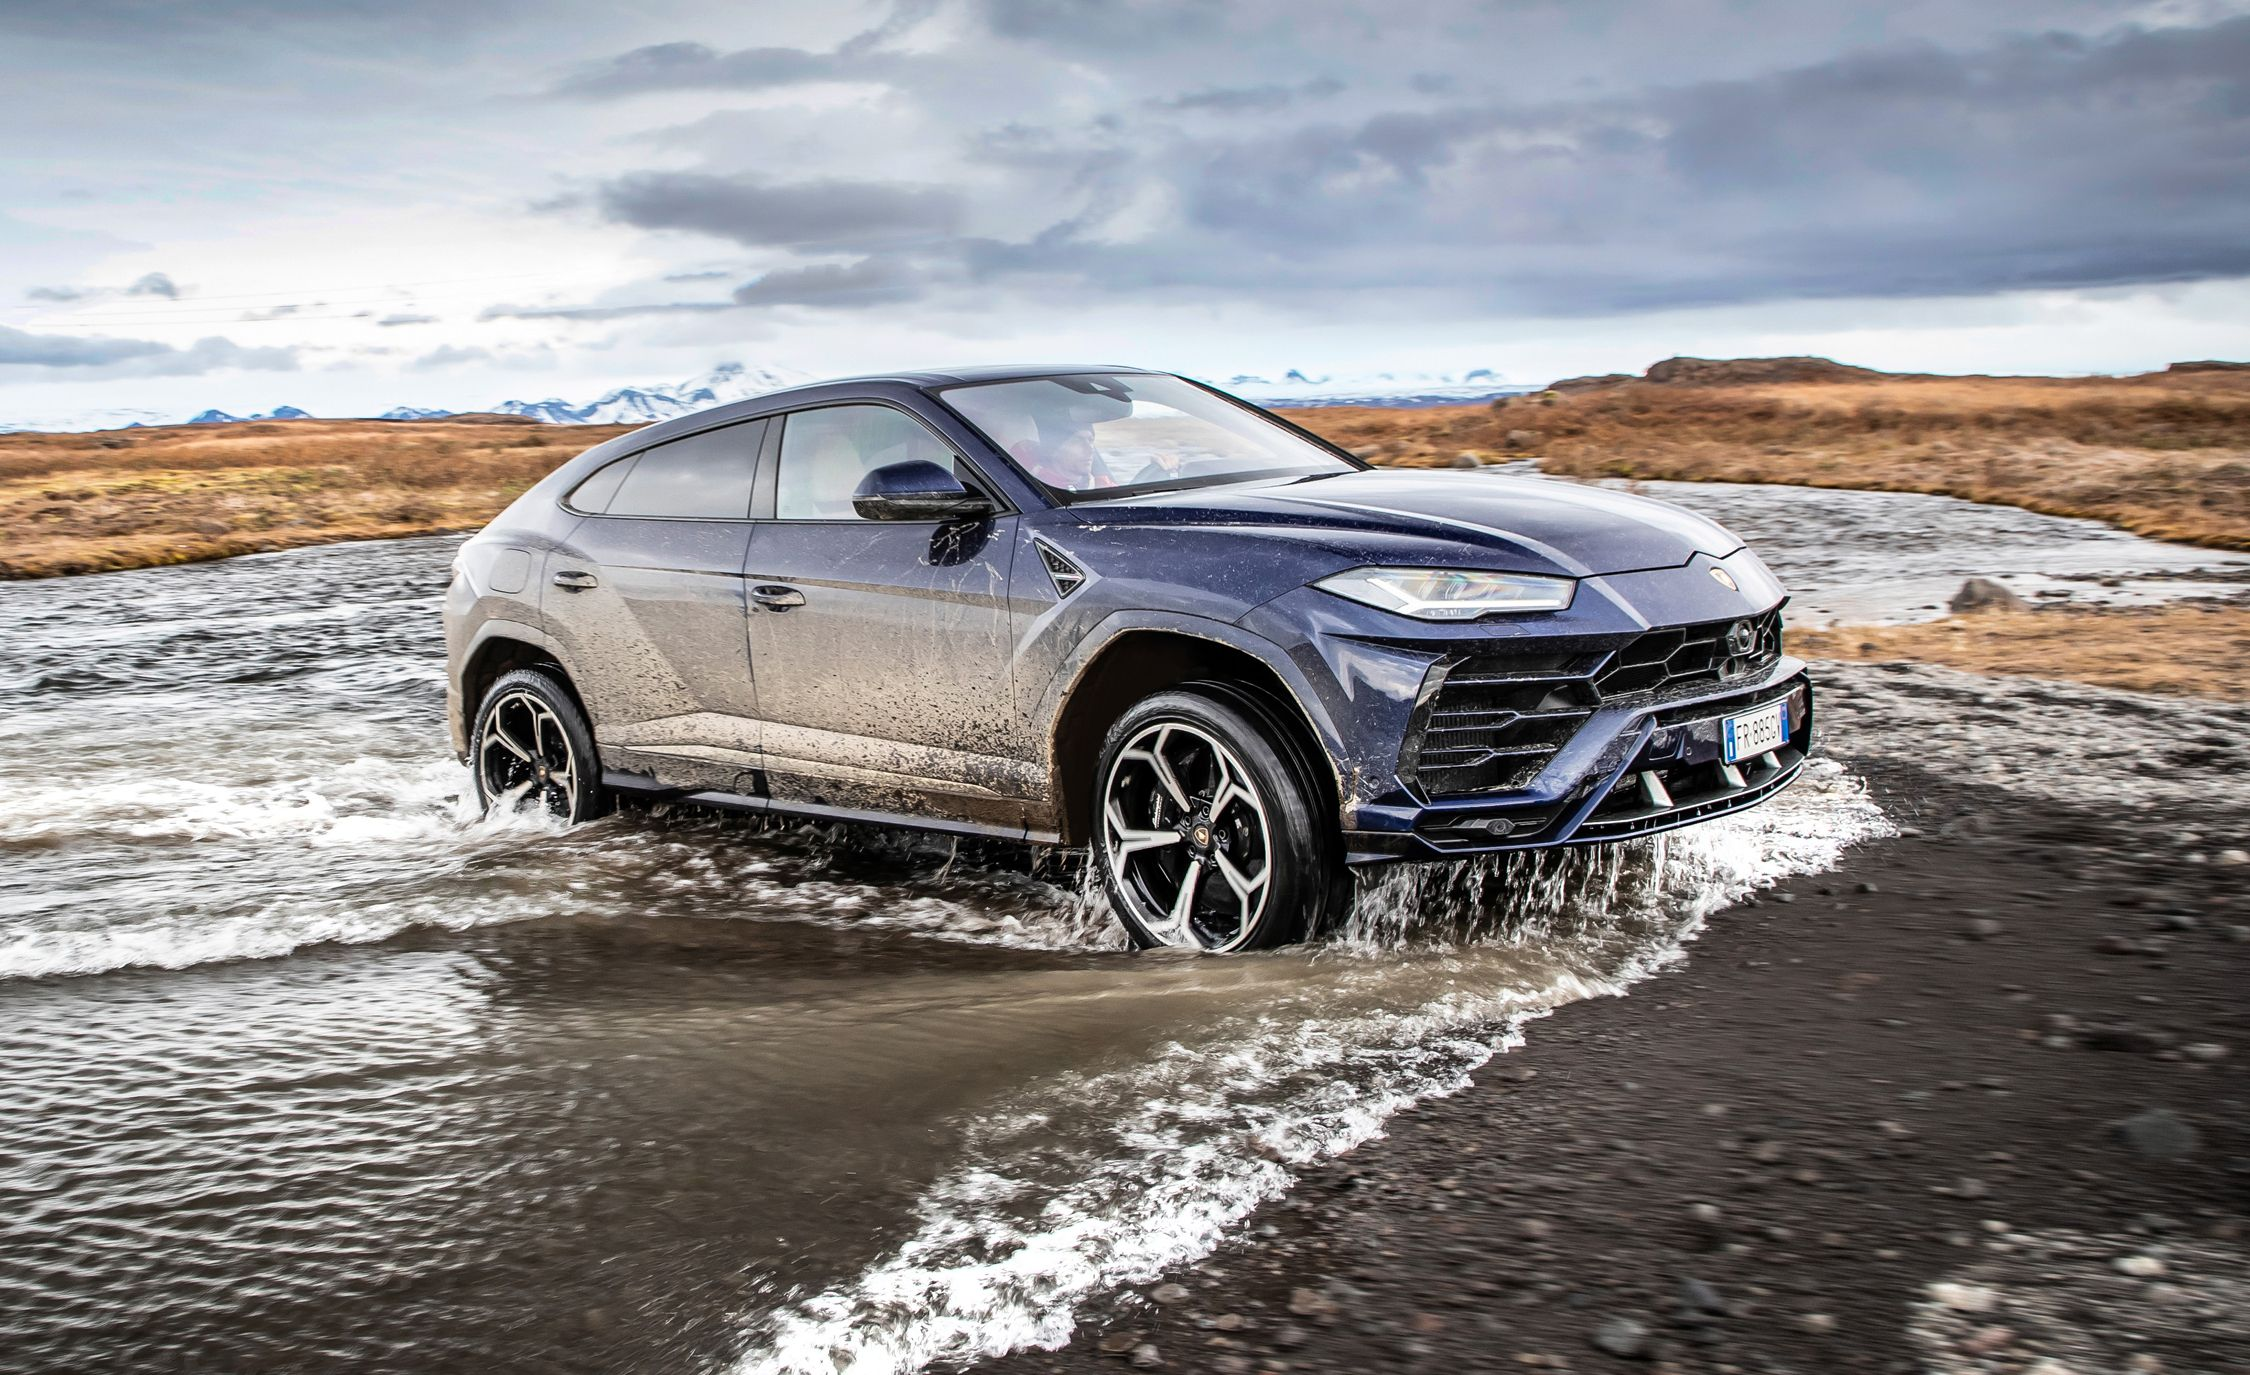 2019 Lamborghini Urus Review, Pricing, and Specs